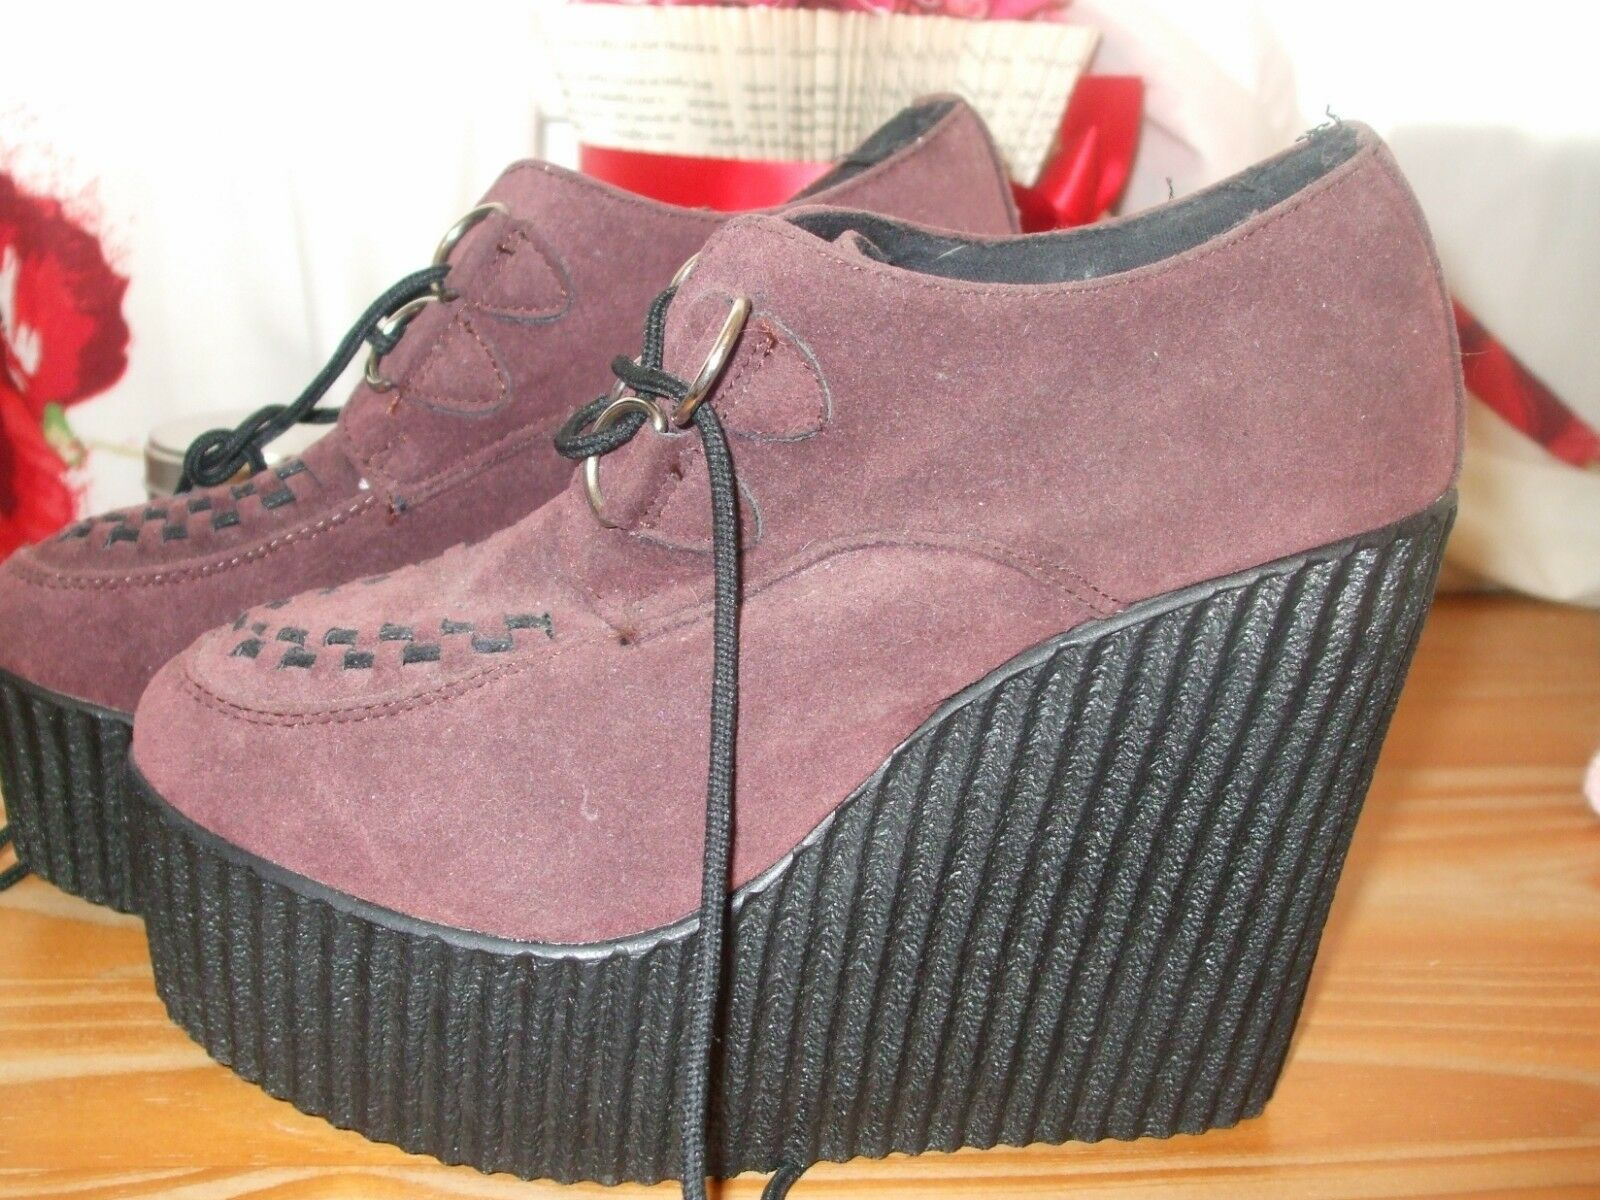 BNOWT FROM SUEDE SHOE SIZE 5 FROM BNOWT NEW LOOK 7467d5